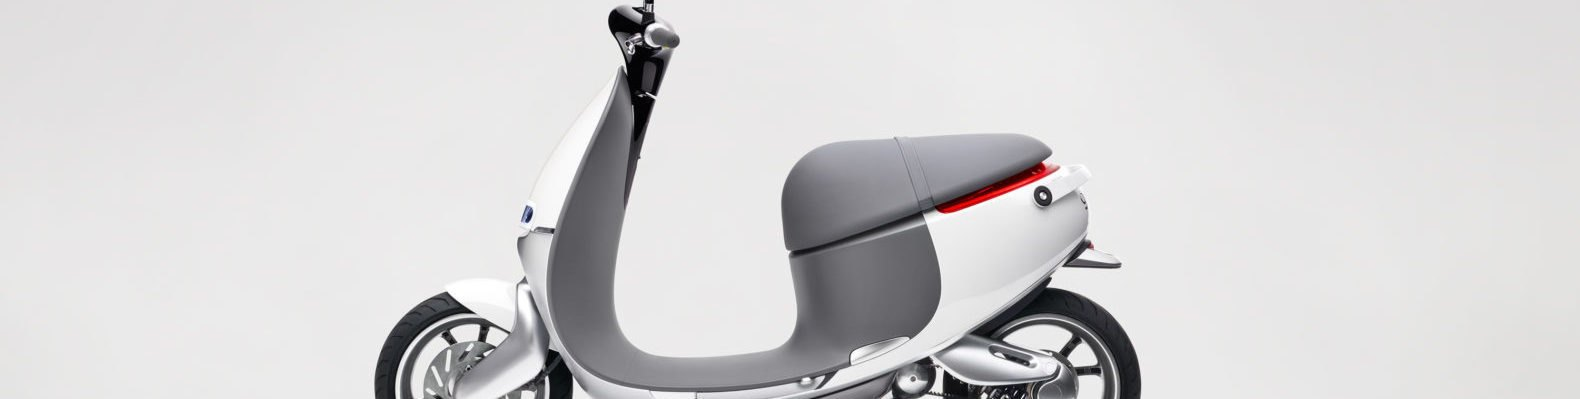 paris launches electric scooter sharing program with coup and gogoro. Black Bedroom Furniture Sets. Home Design Ideas